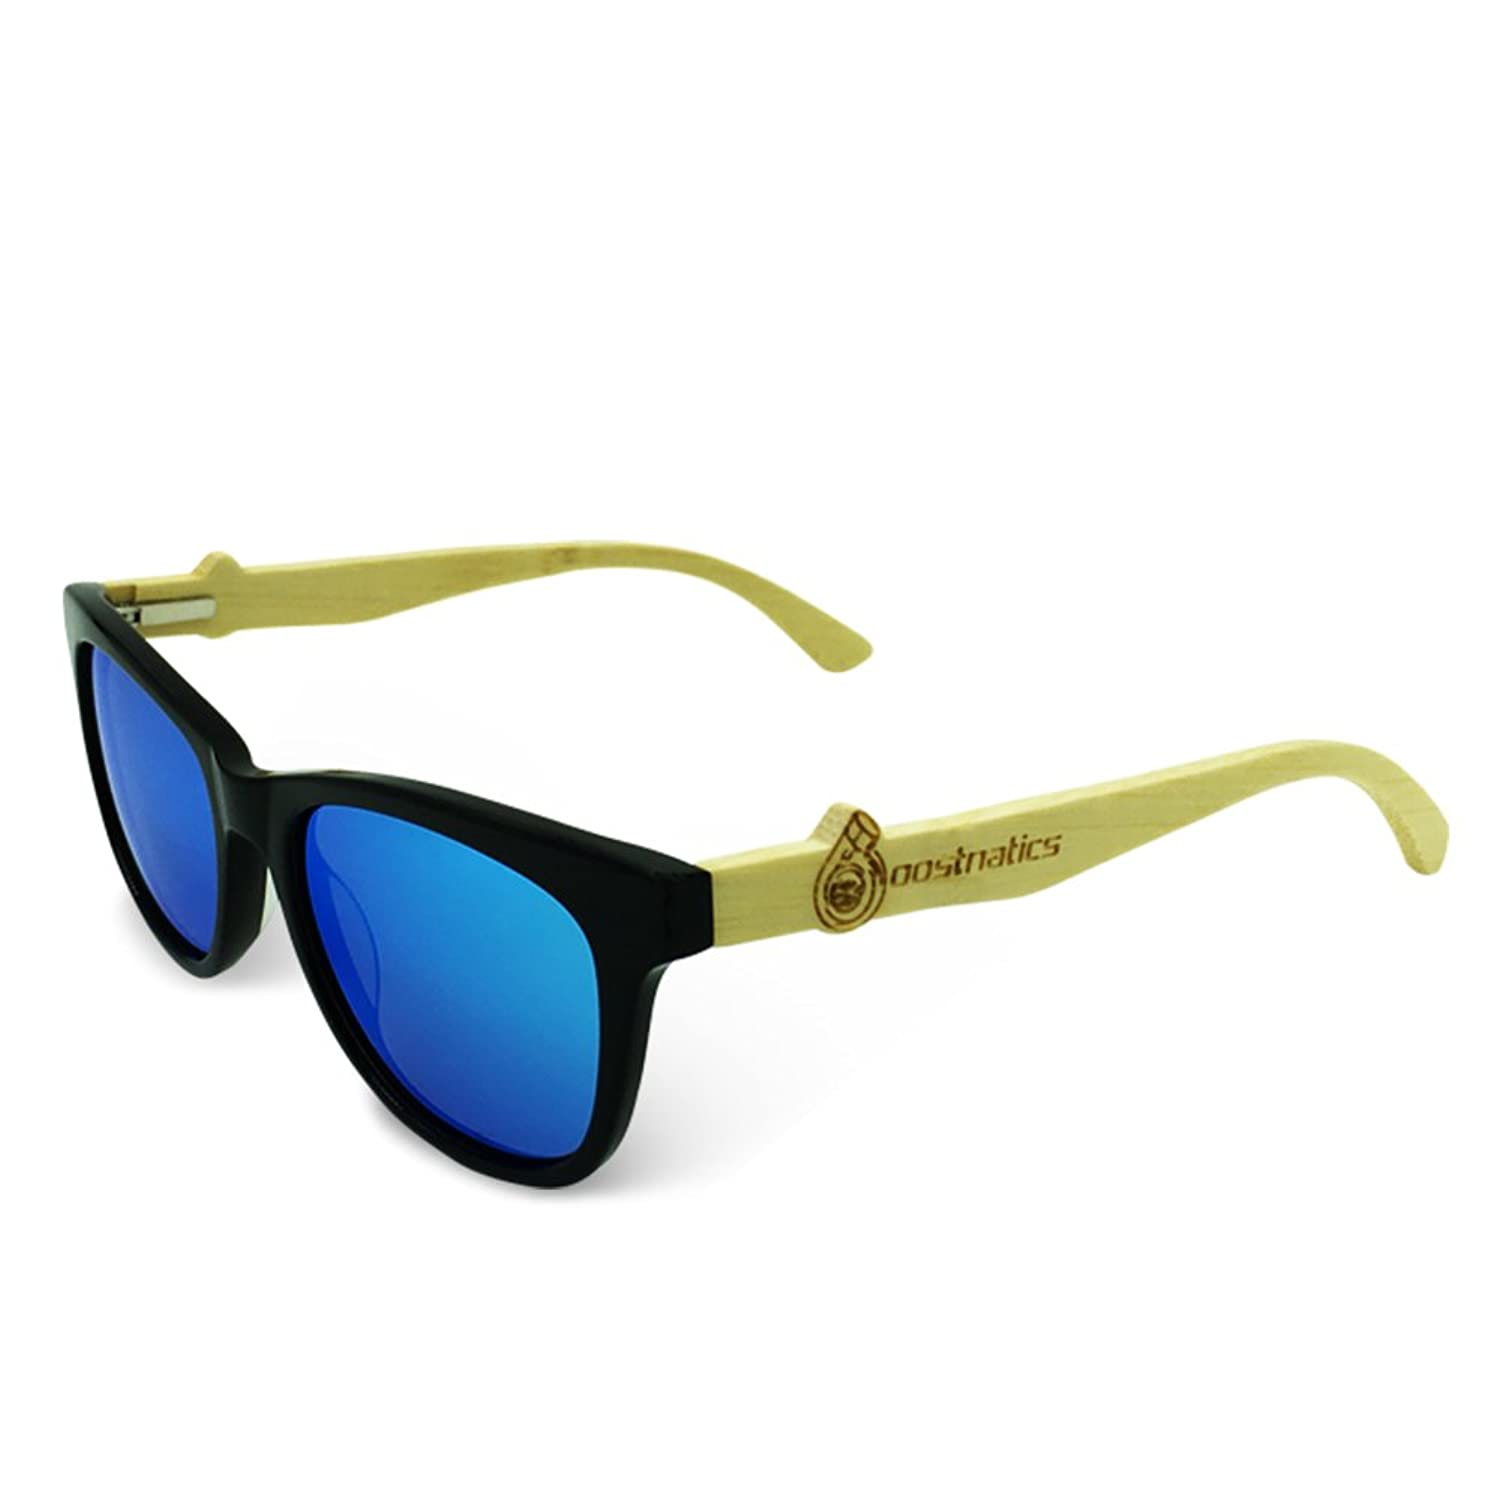 Boostnatics Bamboo Wood Boosted Turbo Shades - Black / Polarized Ice Blue Lens